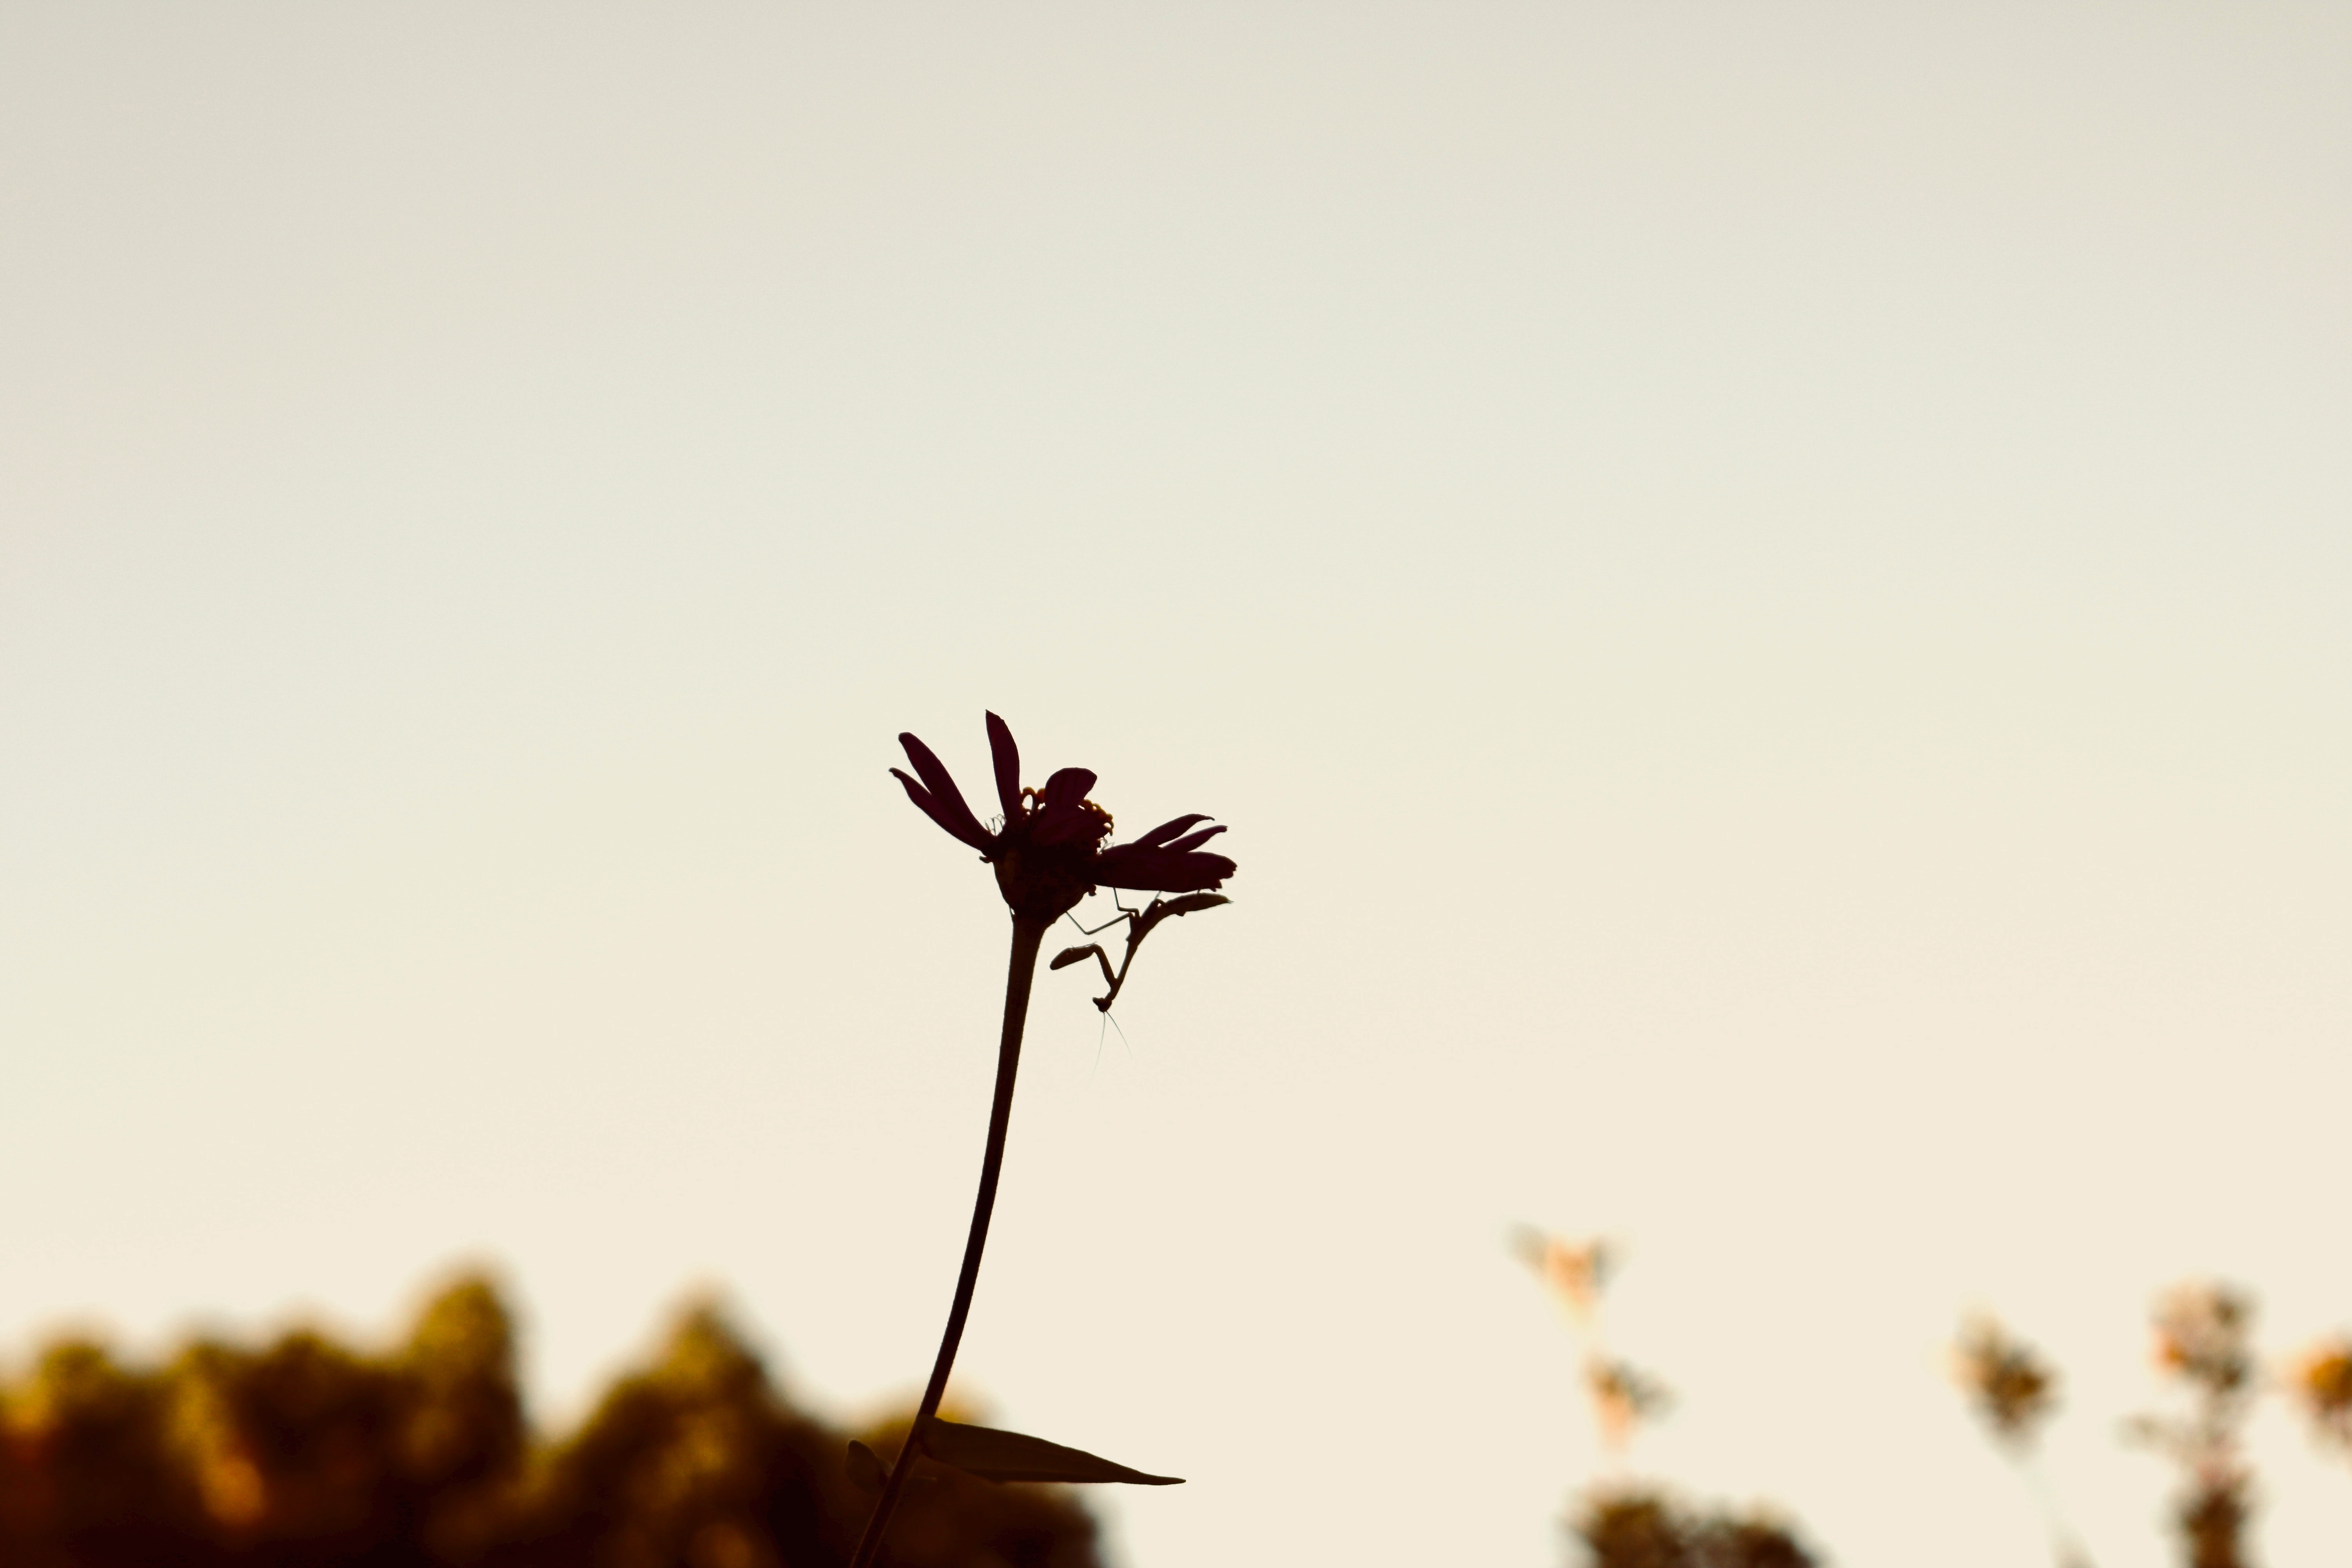 silhouette photography of flower and praying mantis